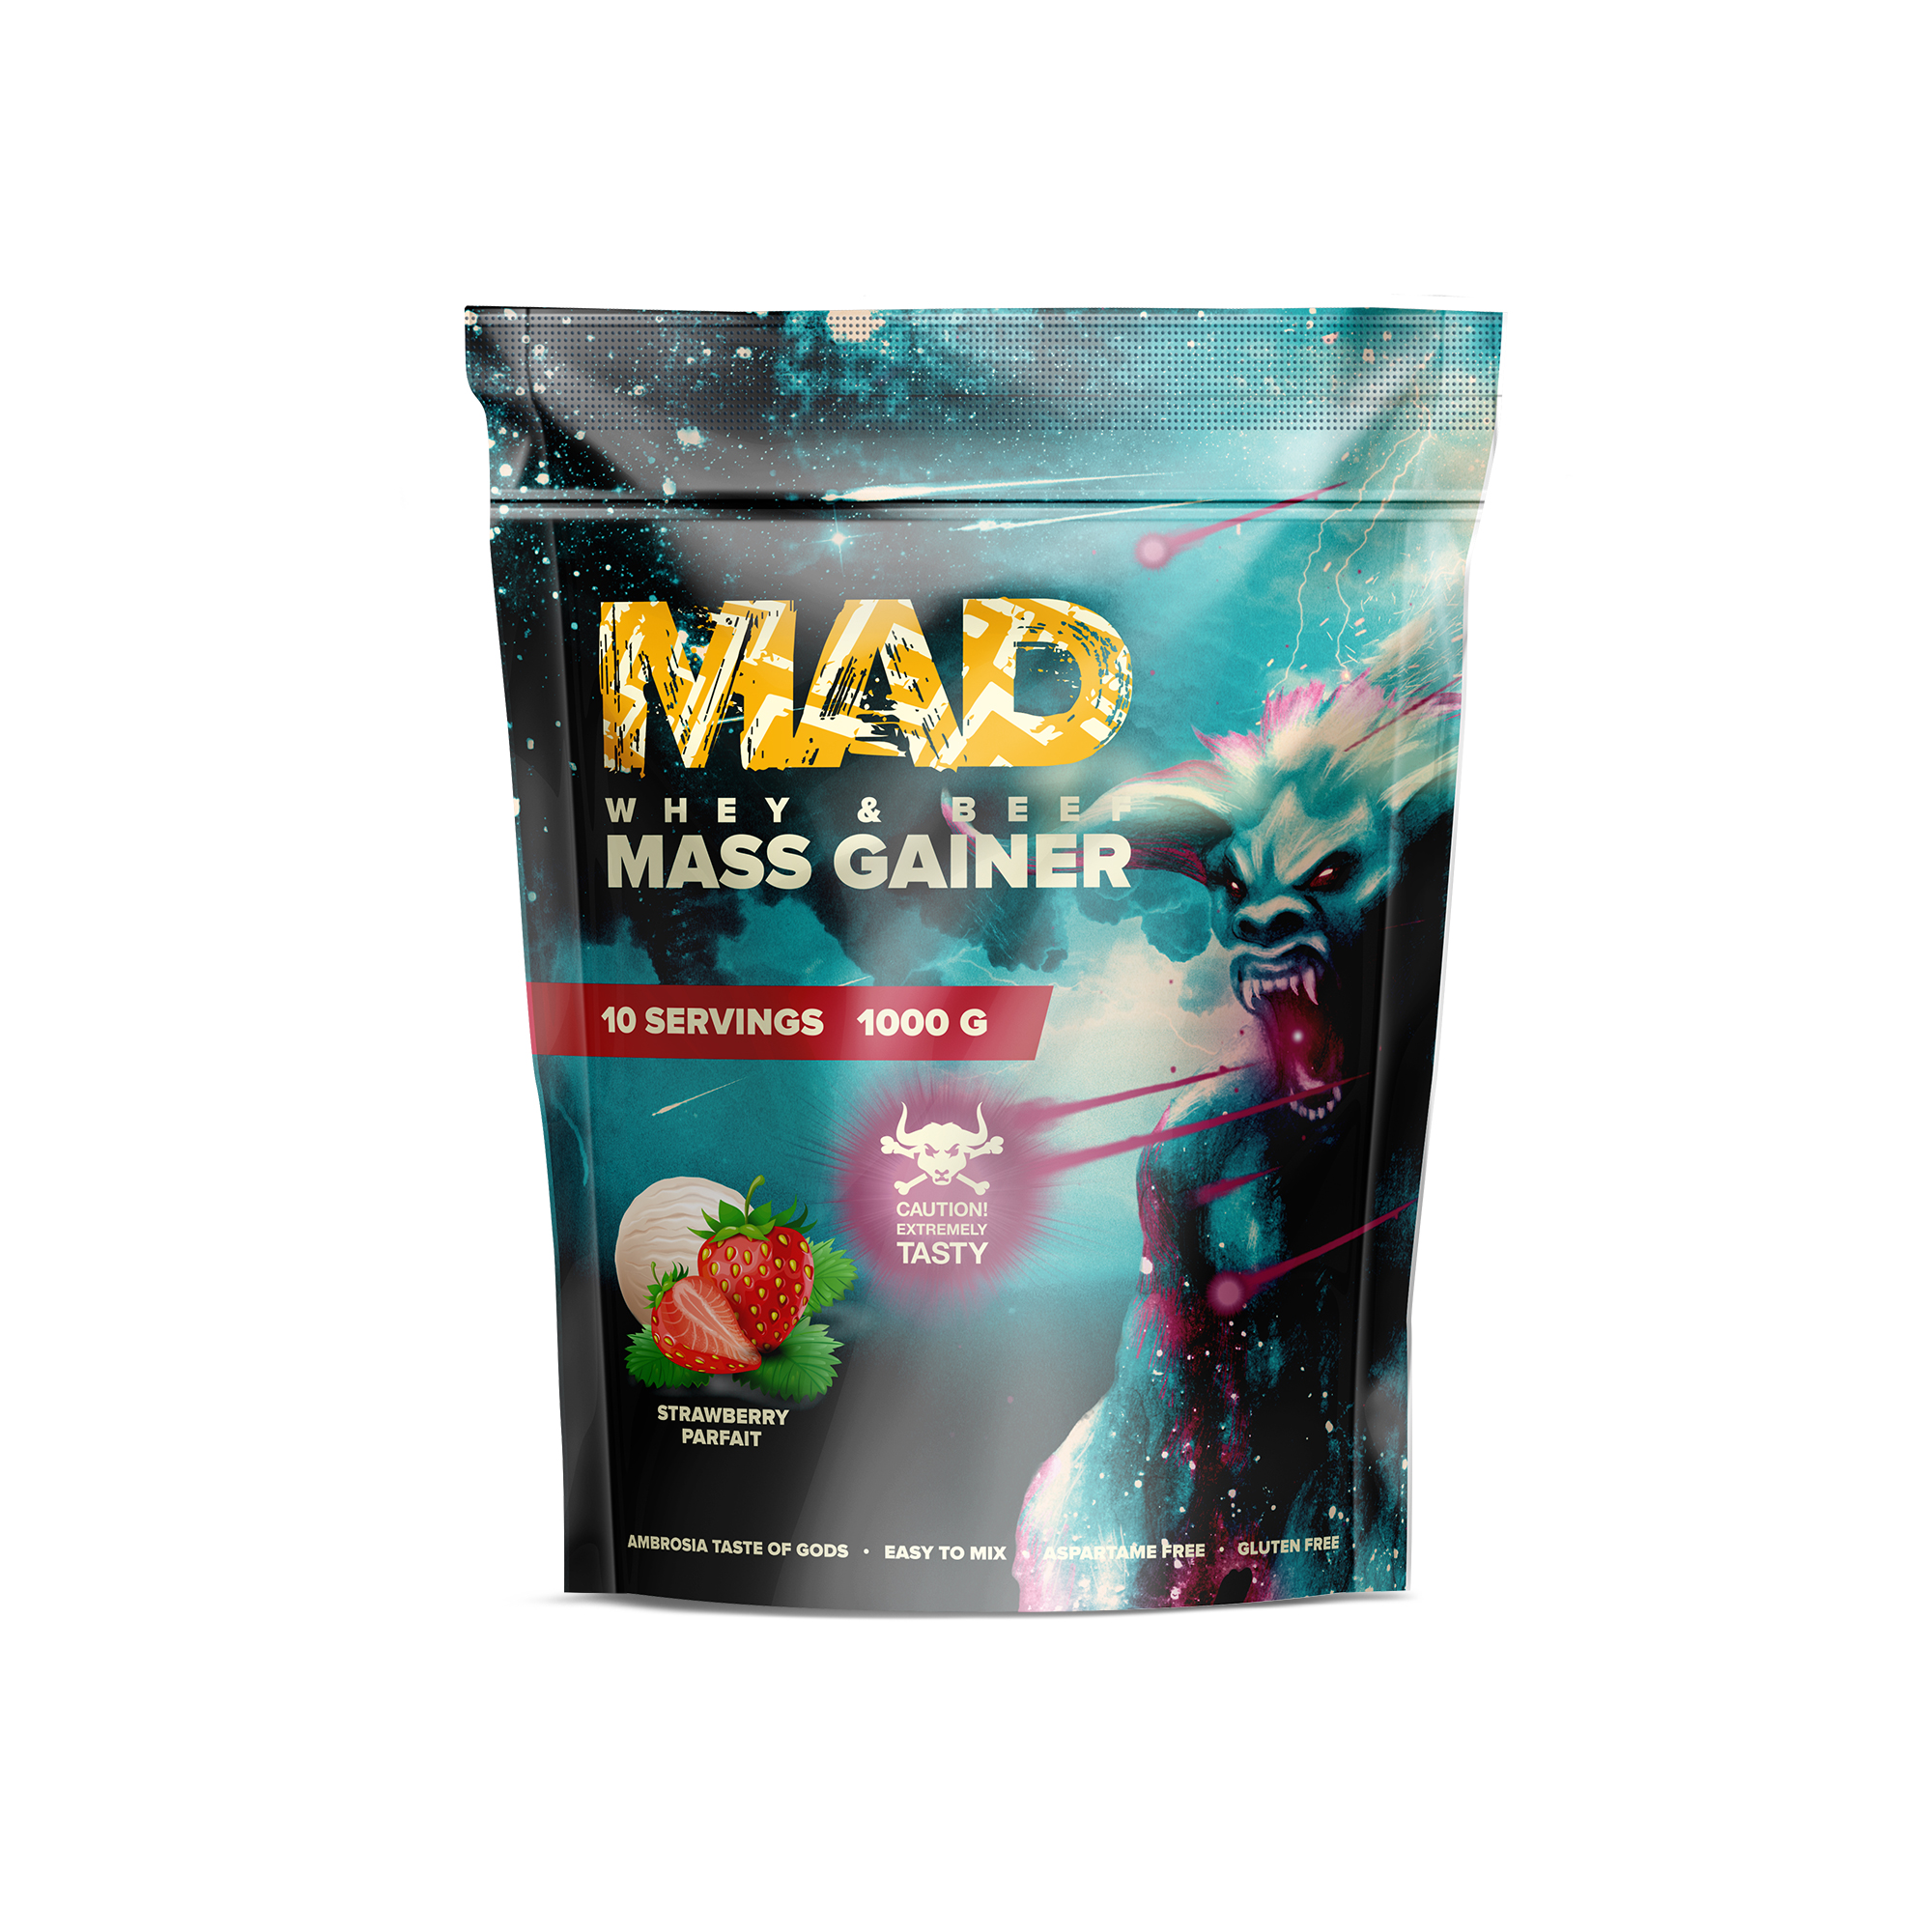 MAD WHEY & BEEF MASS GAINER 1000g/10serv Strawberry